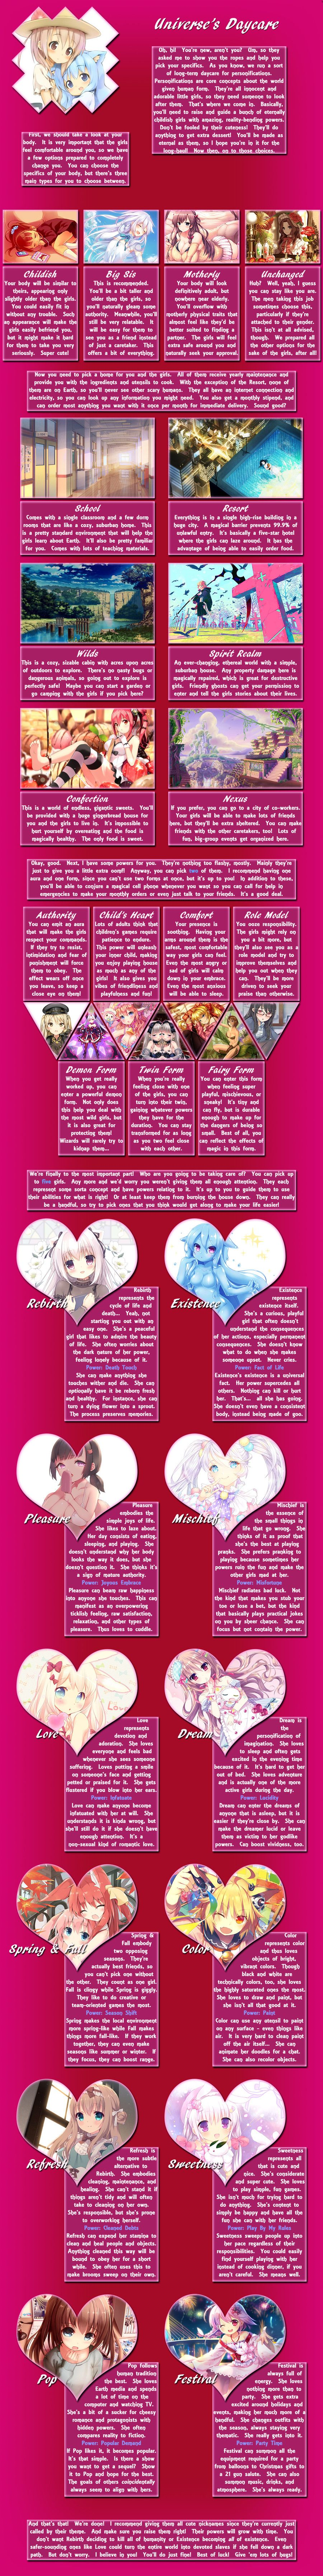 Universe's daycare CYOA (With images) Cyoa, Cyoa games